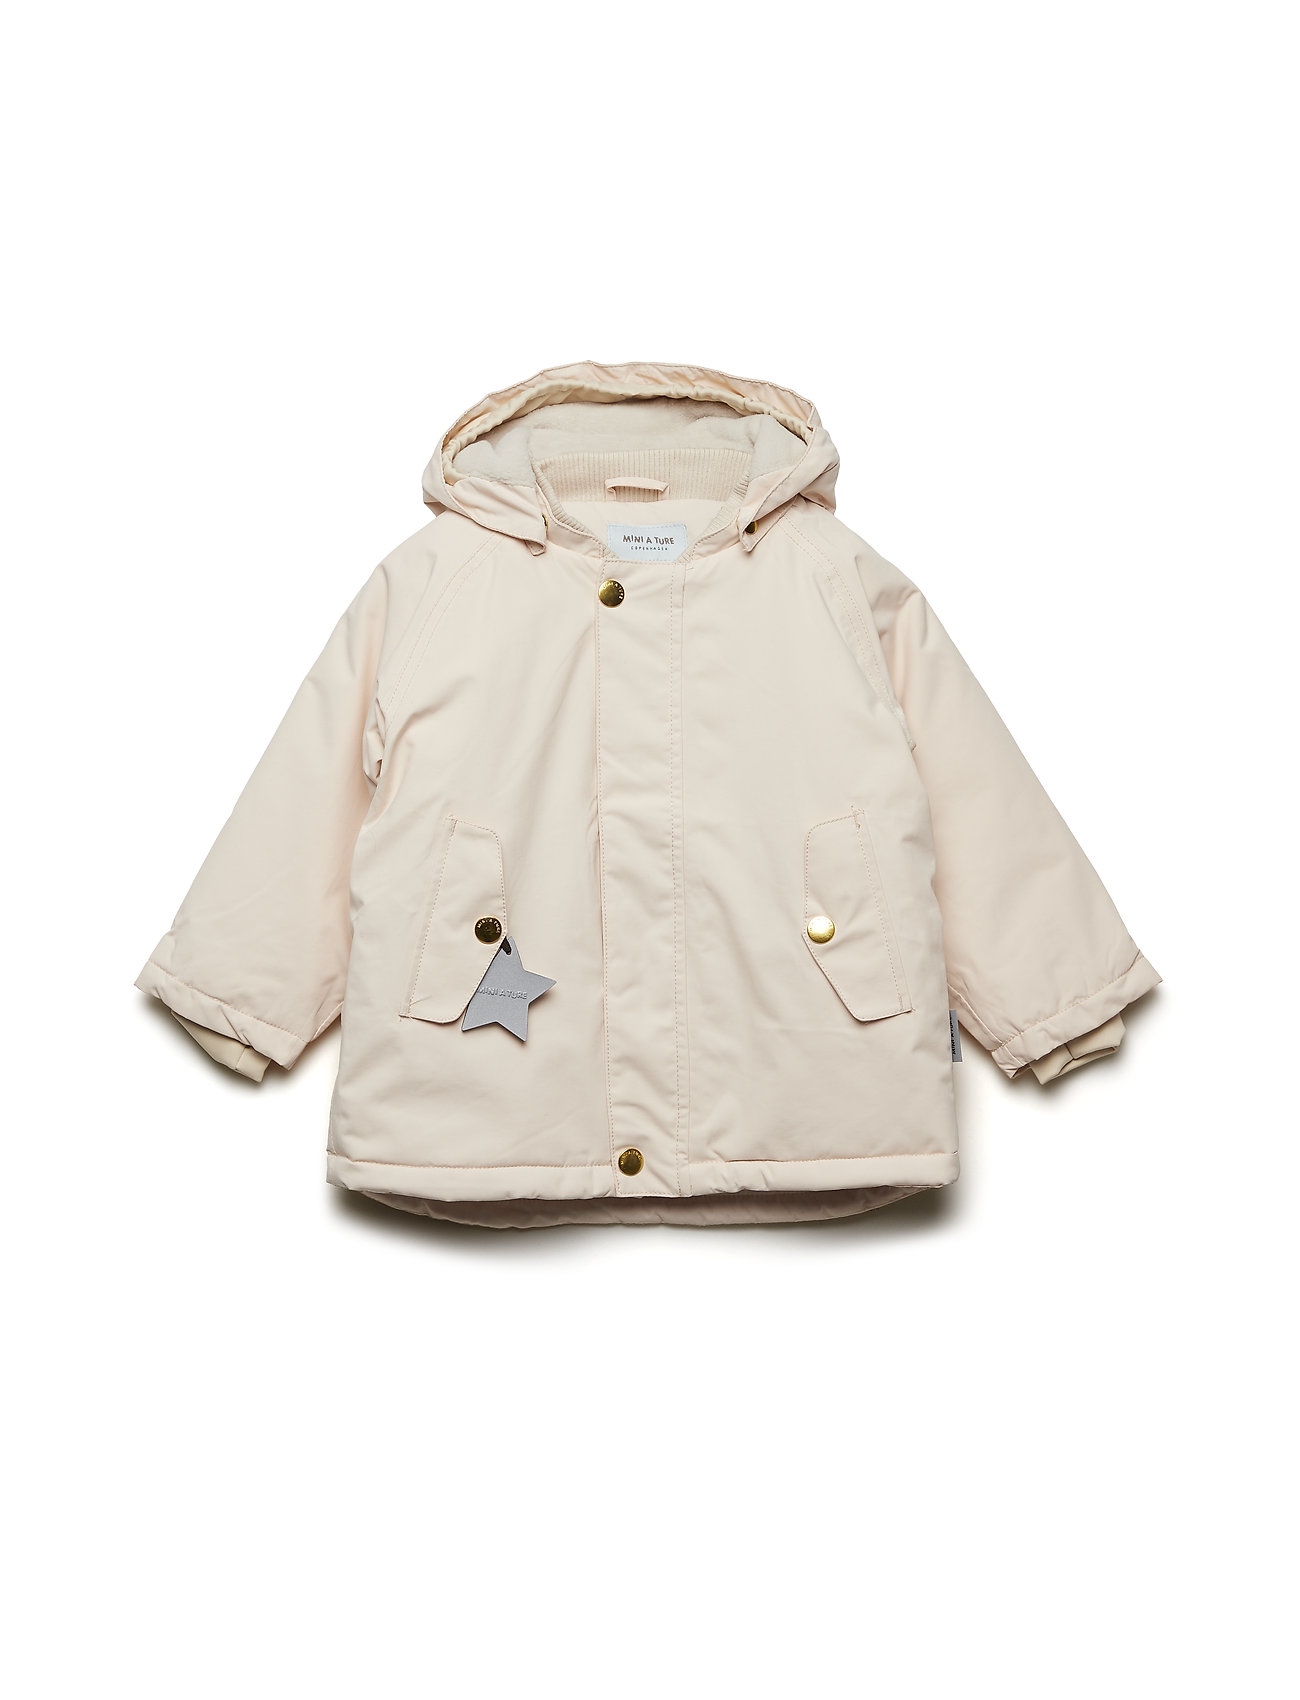 Mini A Ture Wally Jacket, M - CRéME DE PECHE